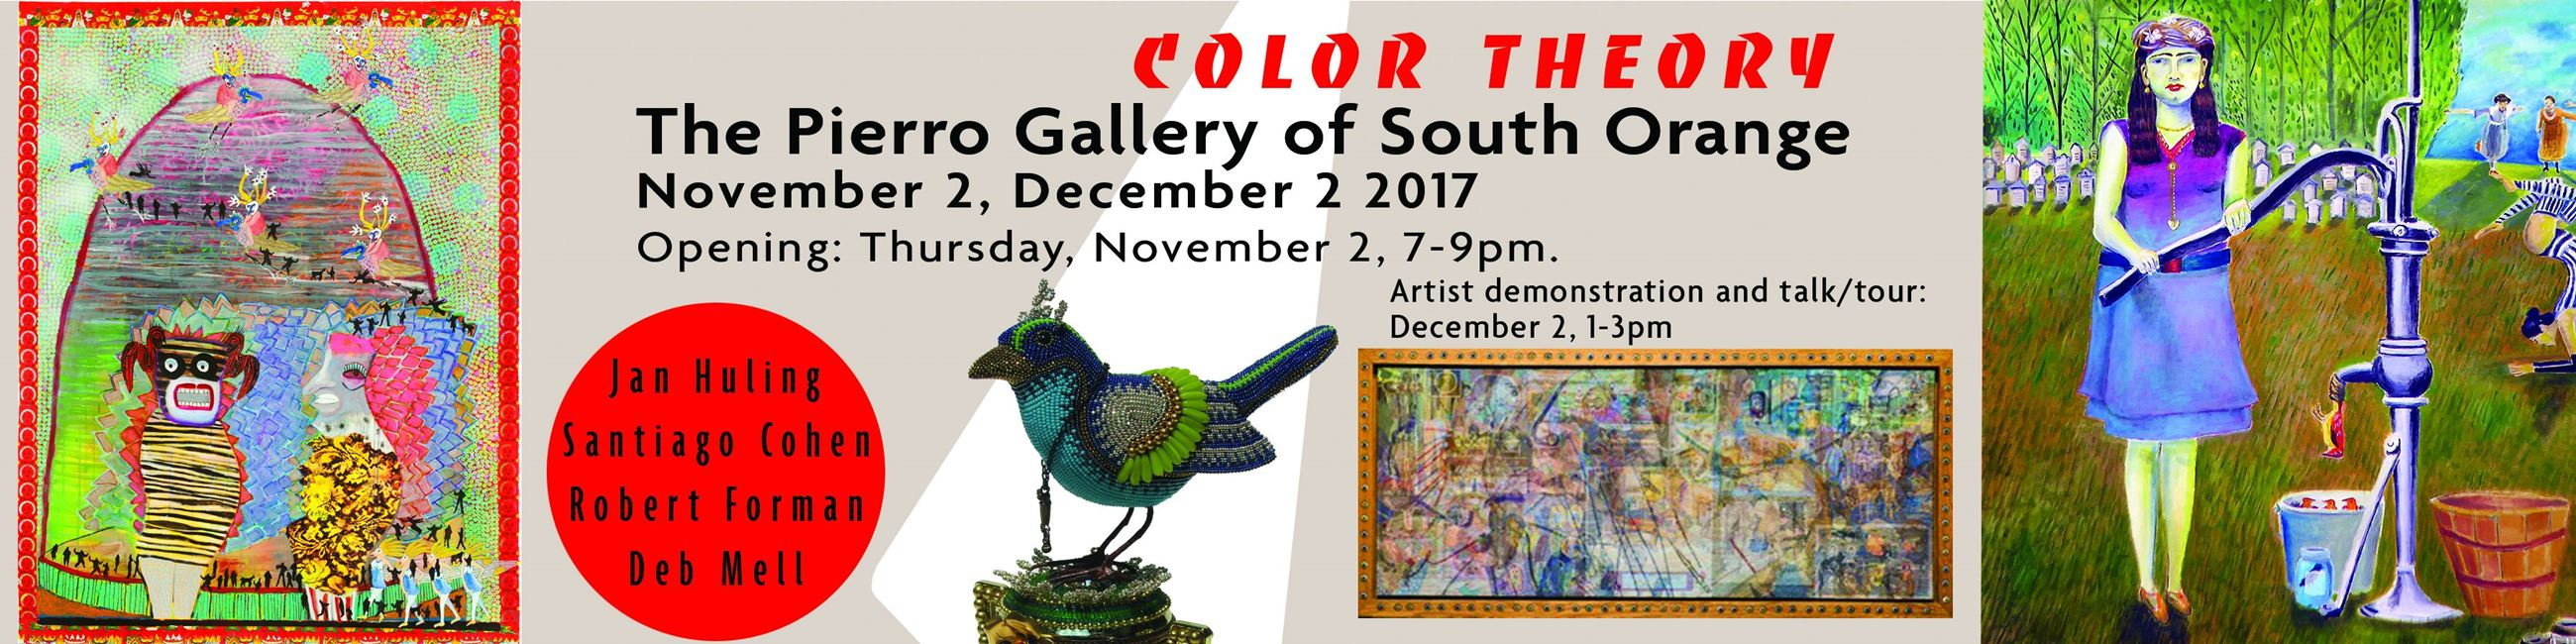 Color Theory Banner